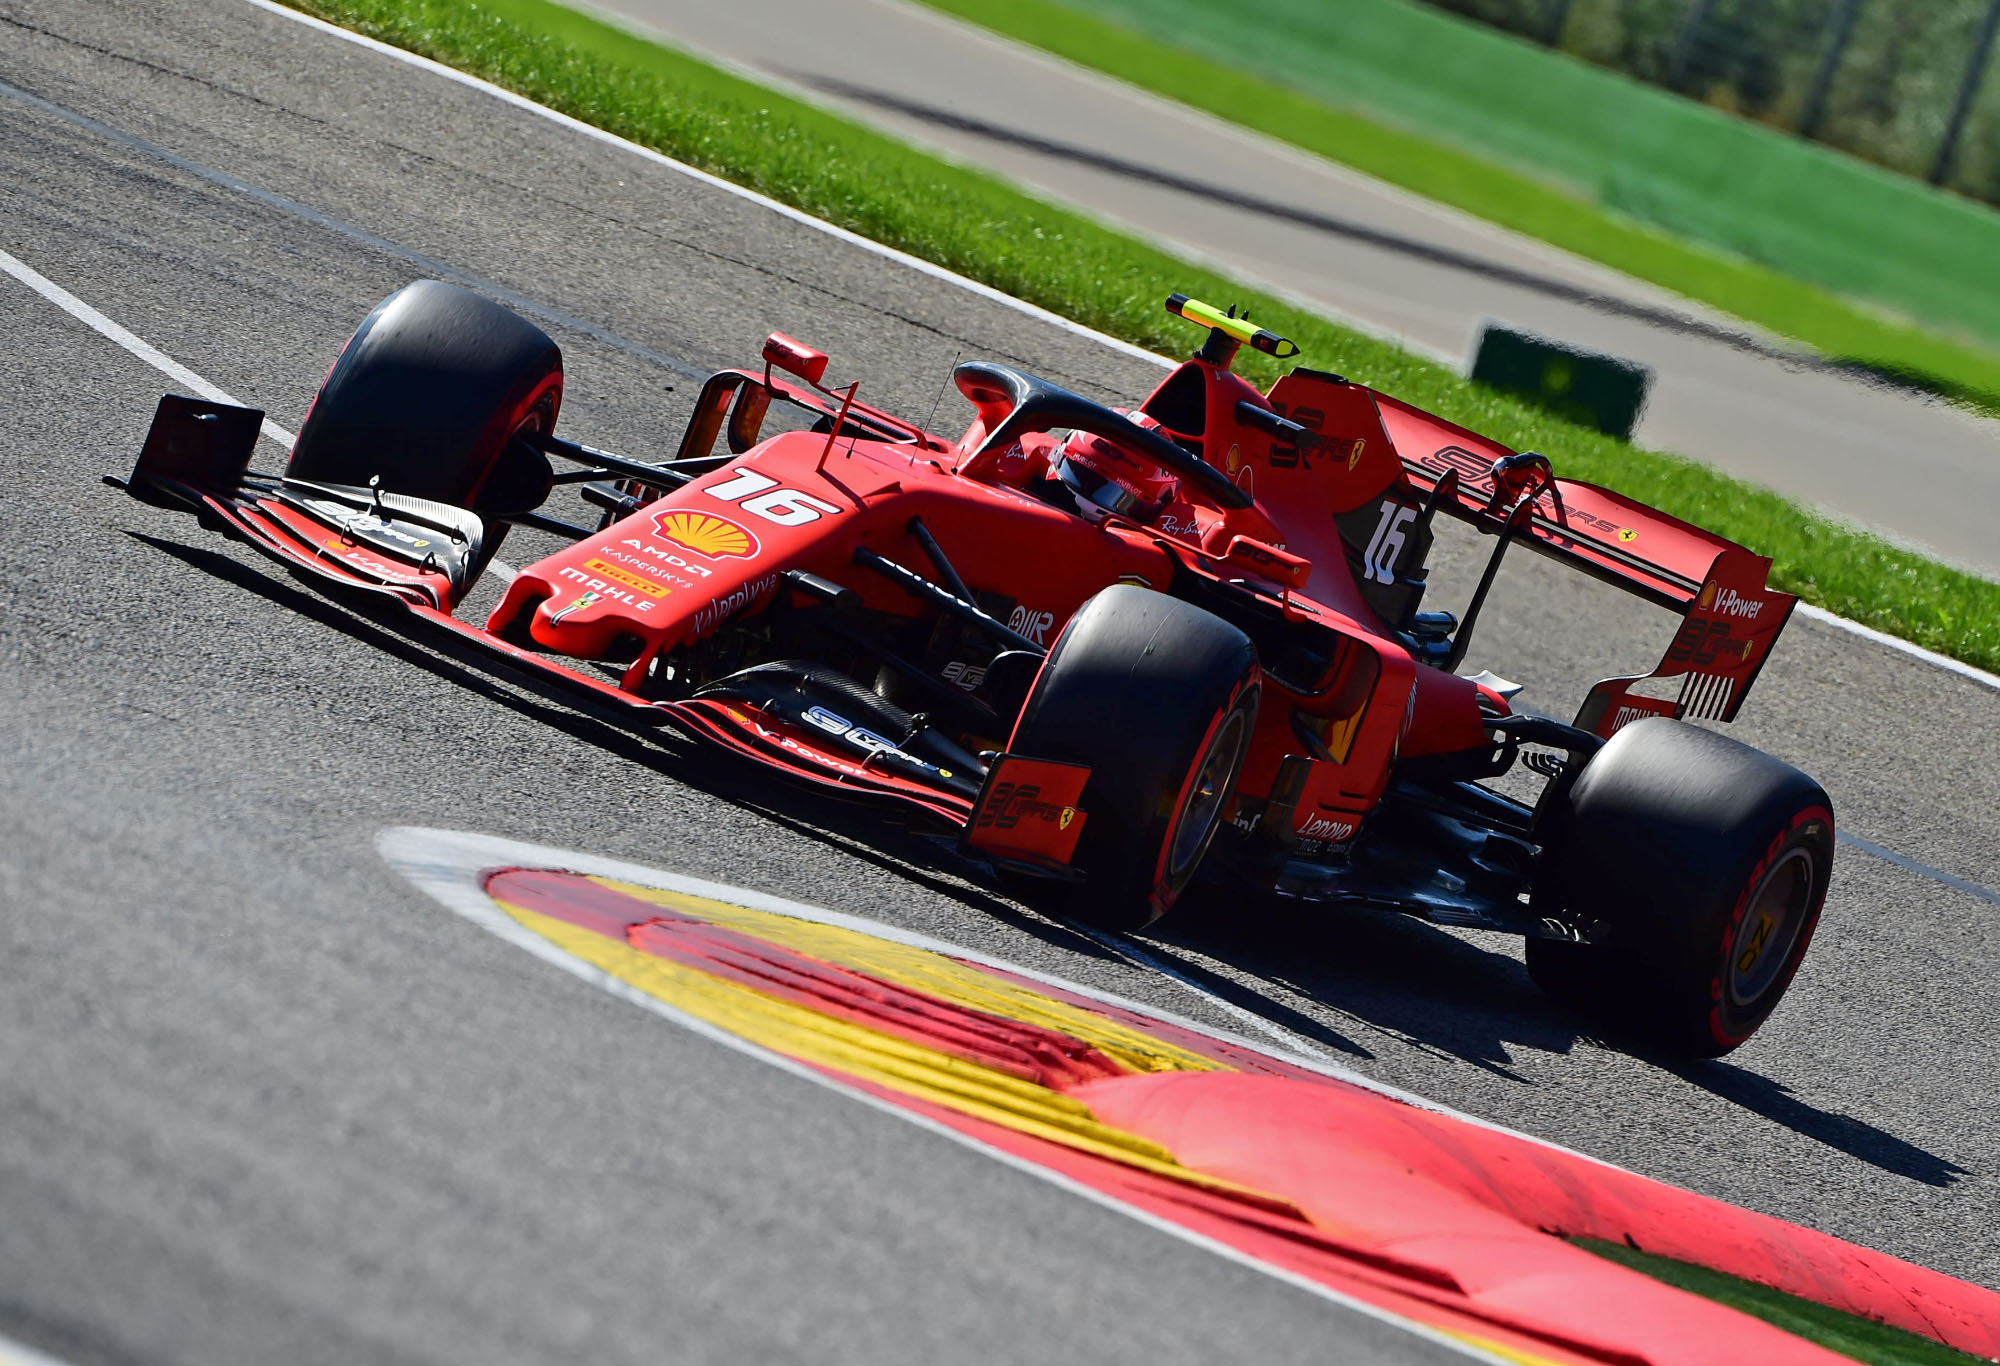 Charles Leclerc on track at the 2019 Belgian Grand Prix.